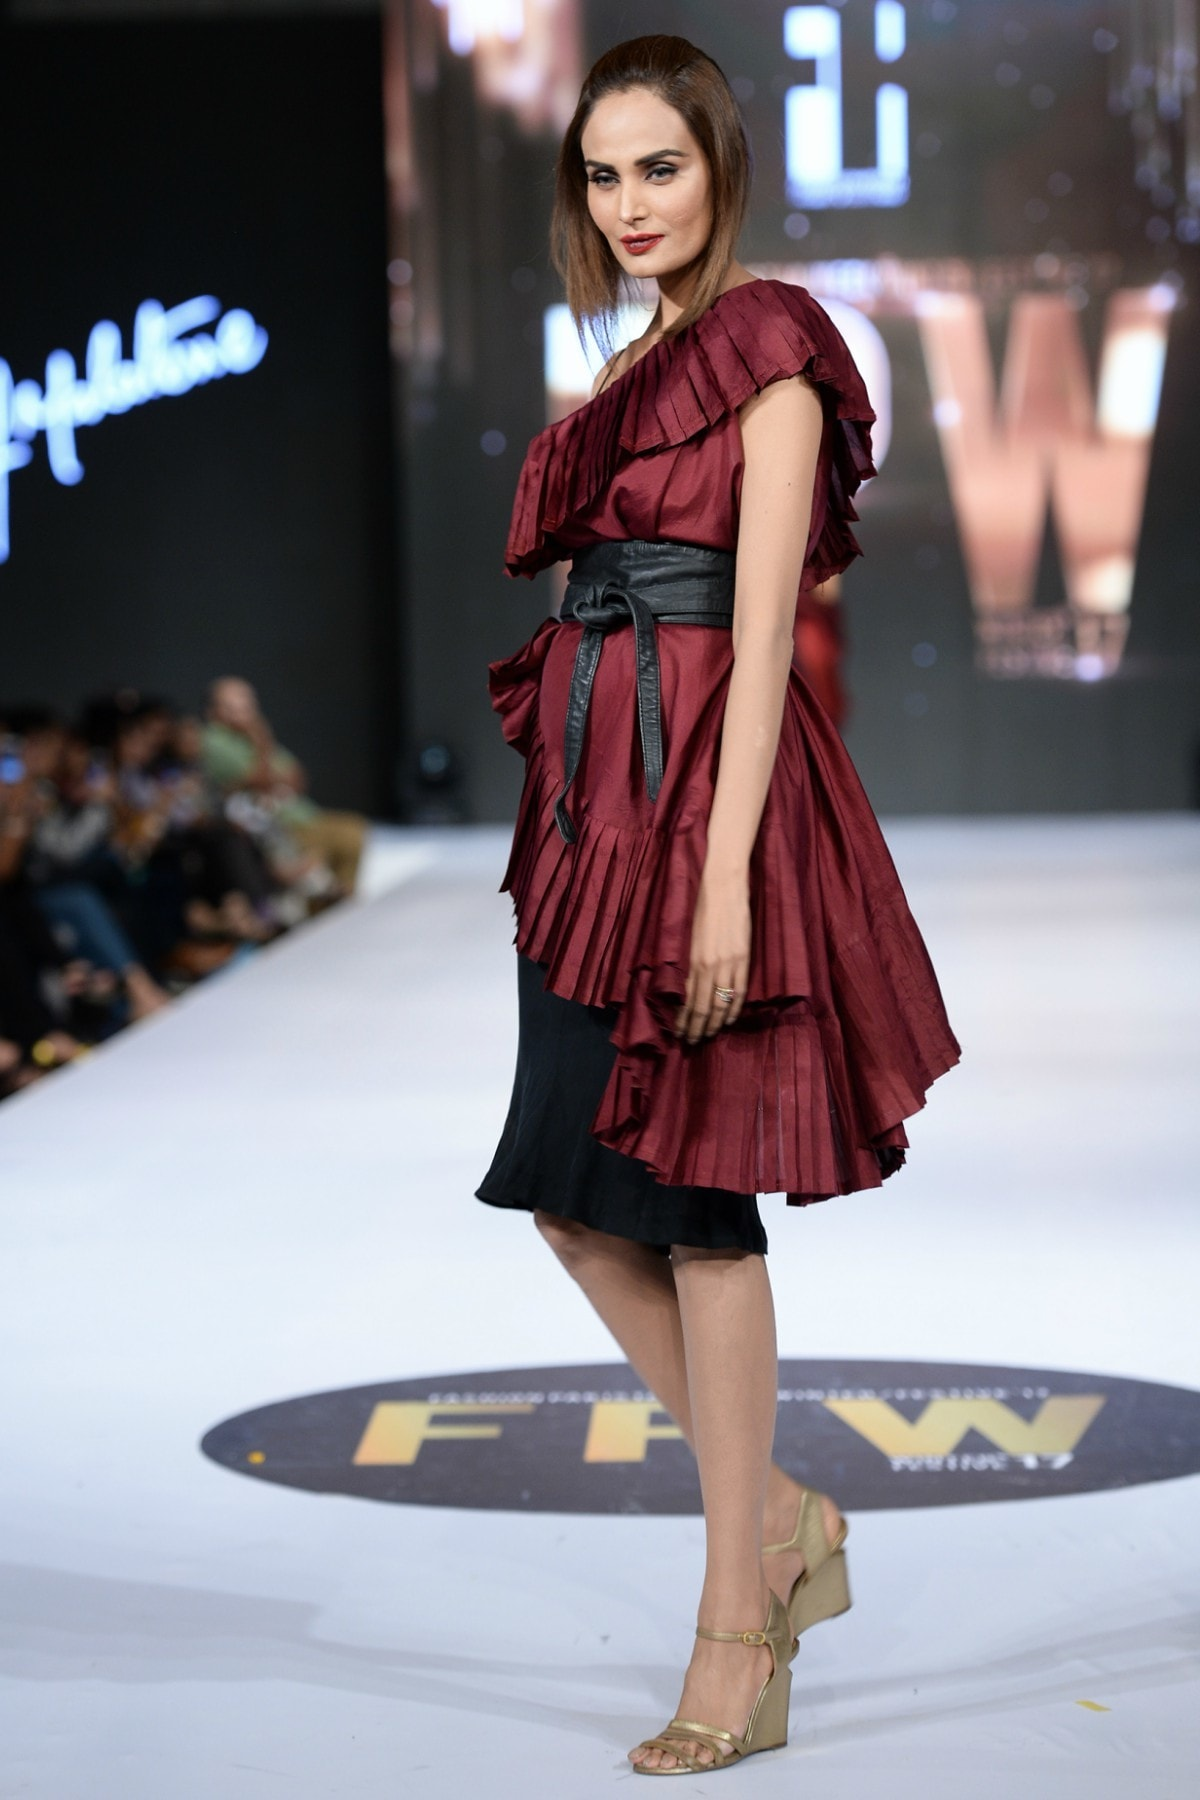 This pleated dress worn by Mehreen Syed was Sadaf's only display of sartorial creativity